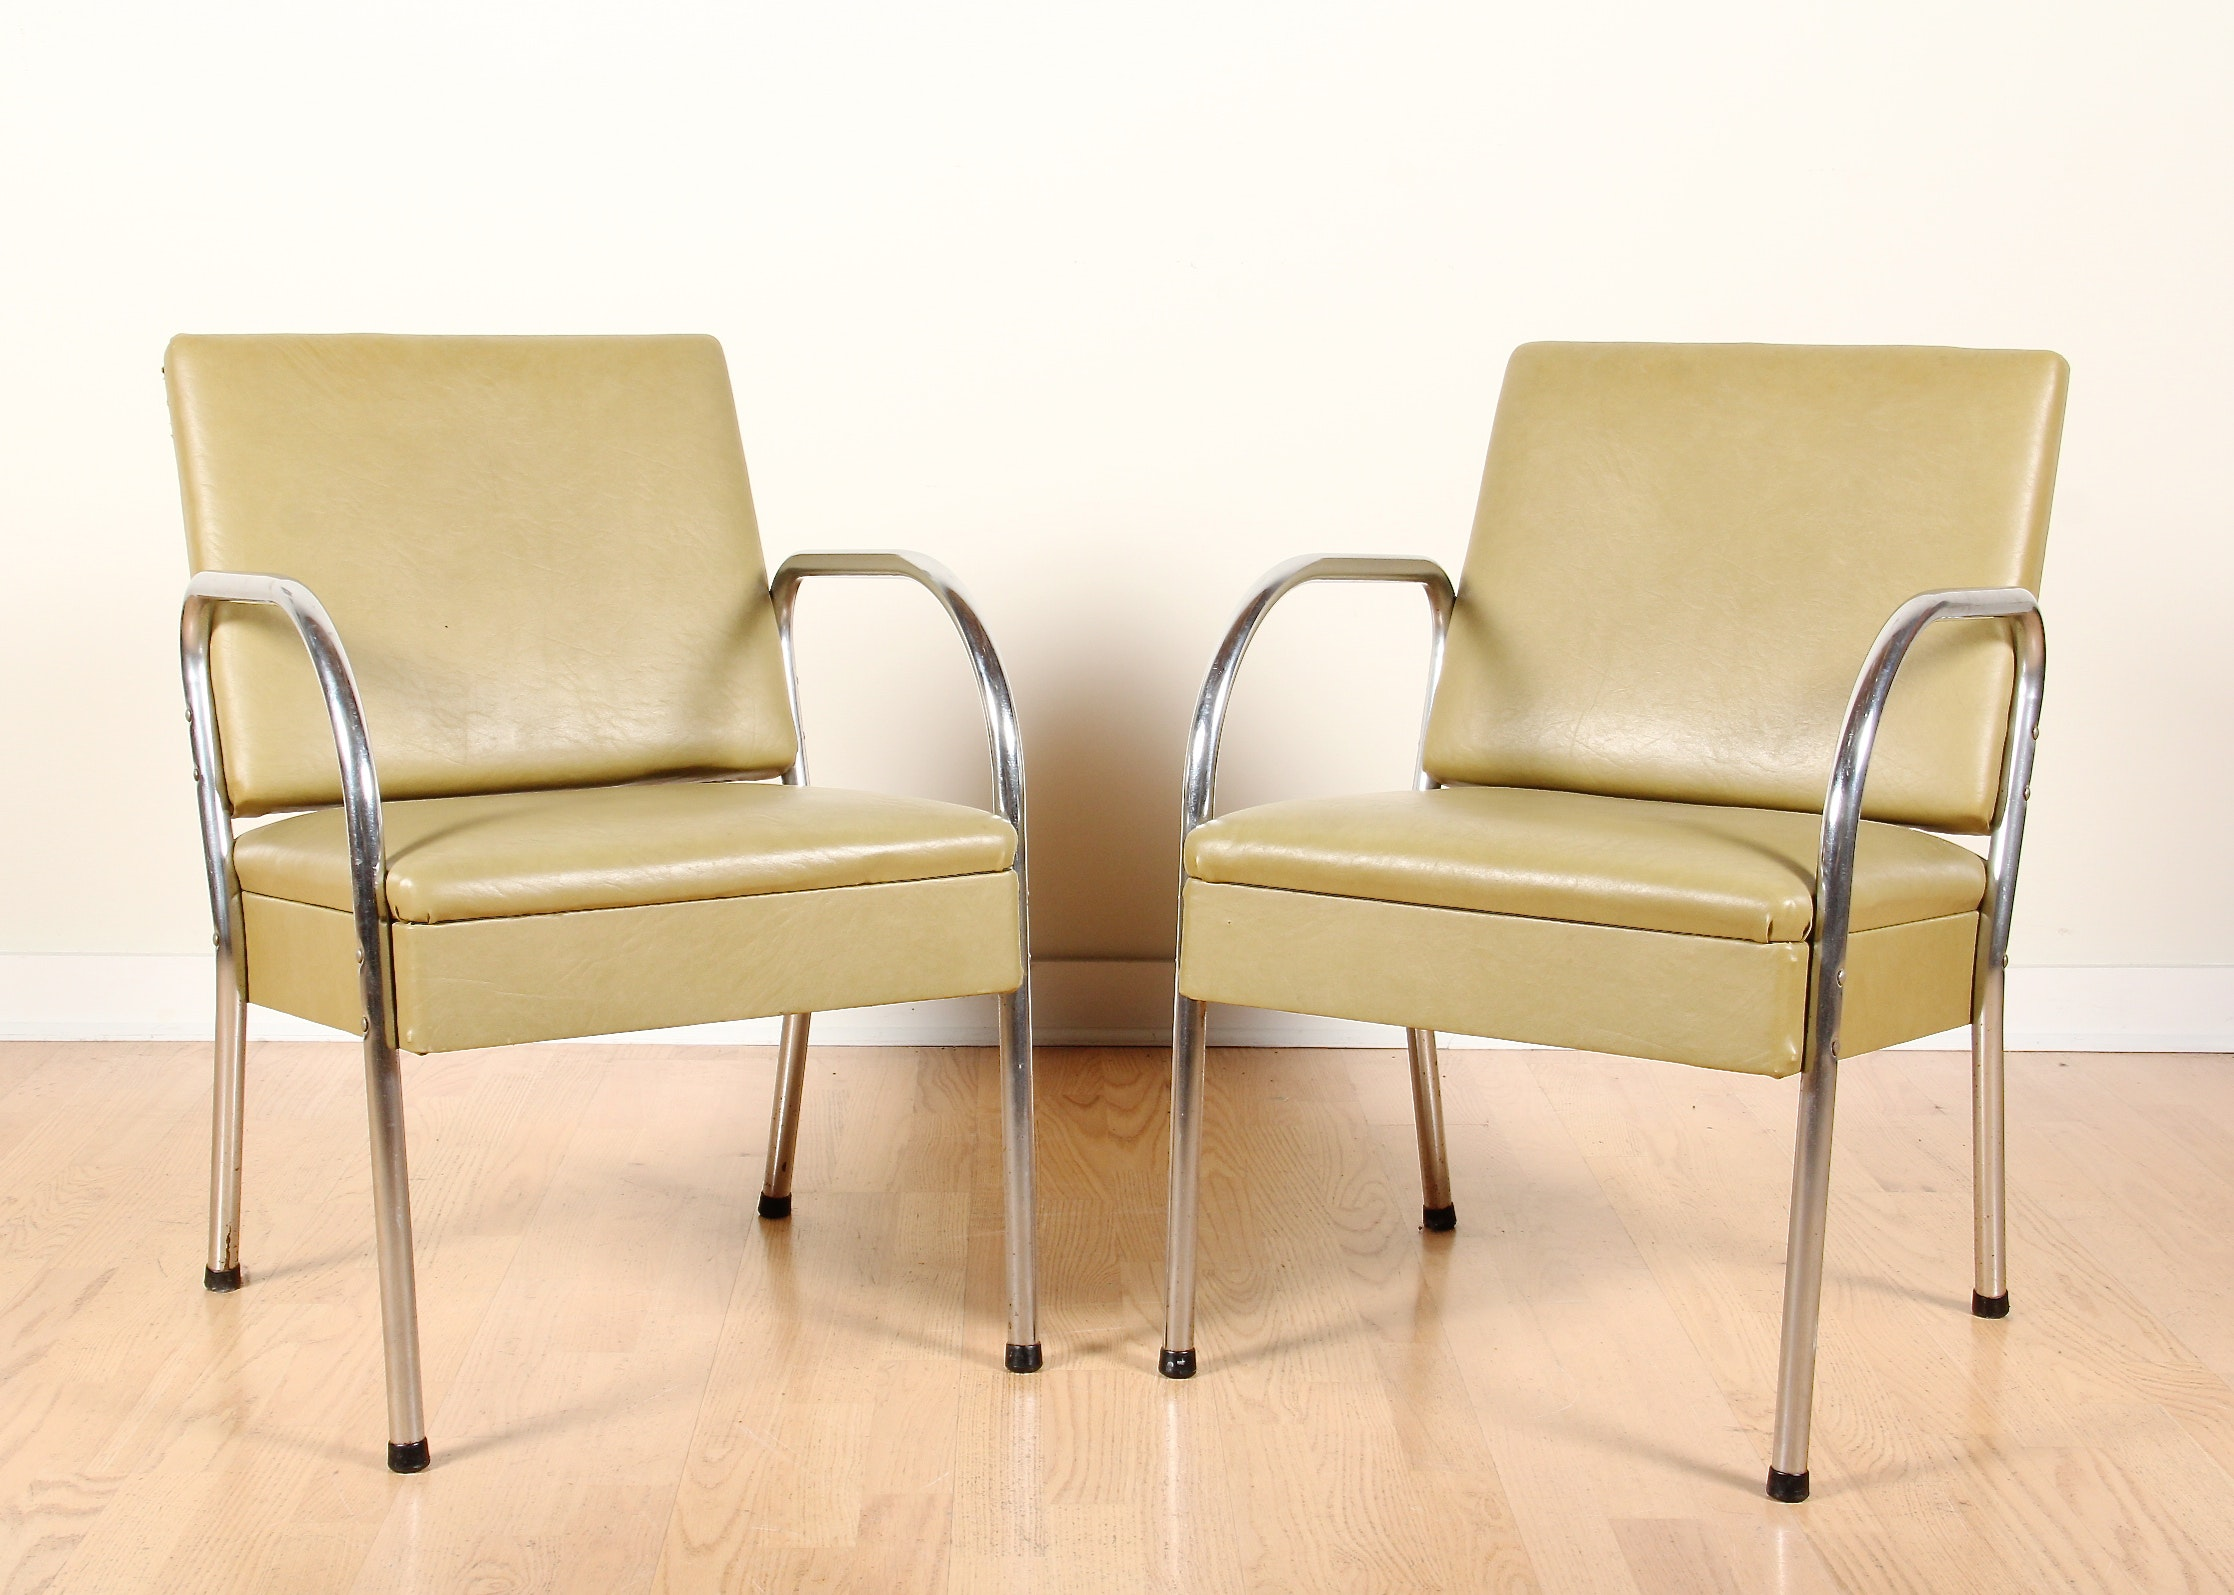 Modern Chrome And Green Naugehyde Arm Chairs